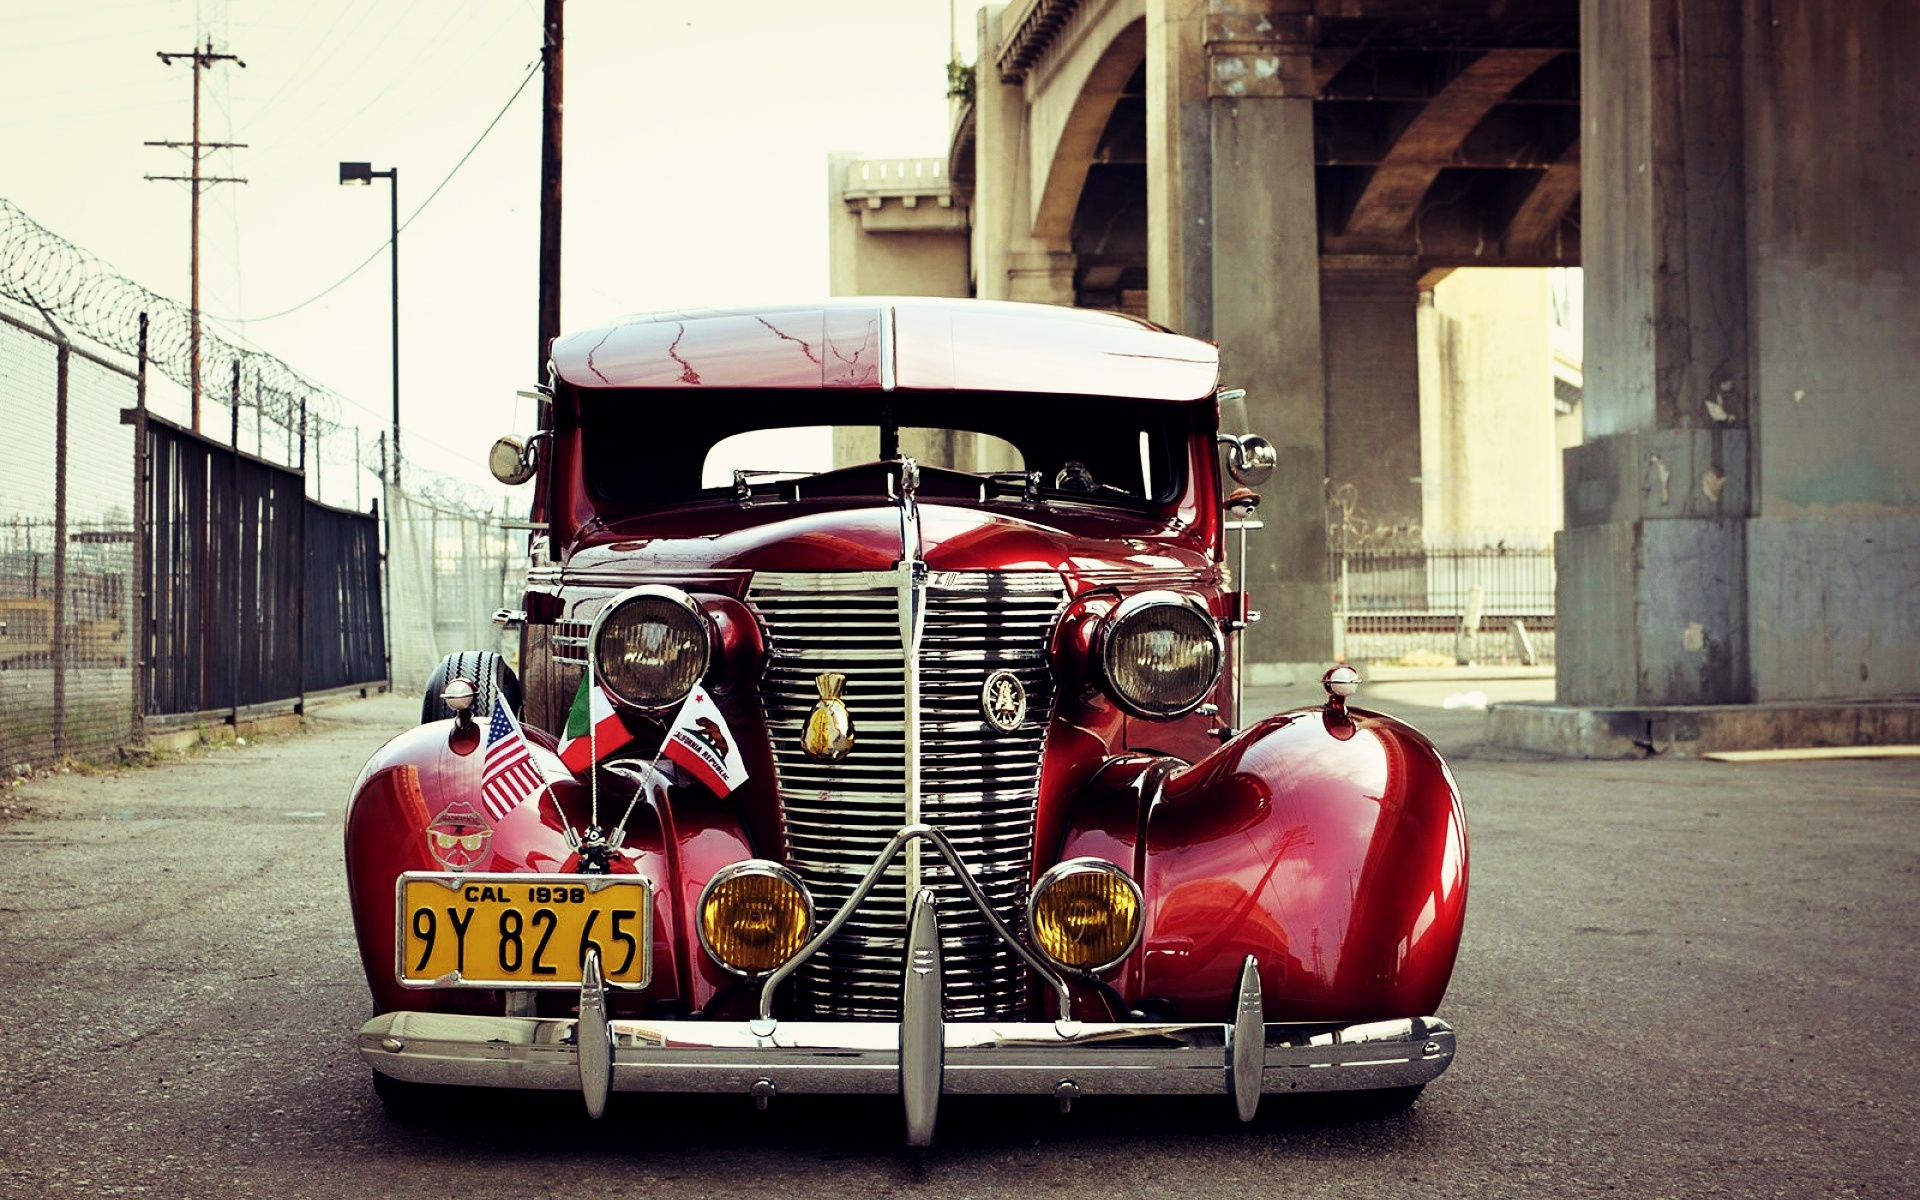 Chevrolet Master Deluxe, 1939, Tuning, Lowrider, Vintage - Chevrolet 1938 Master Deluxe Hot Rod - HD Wallpaper